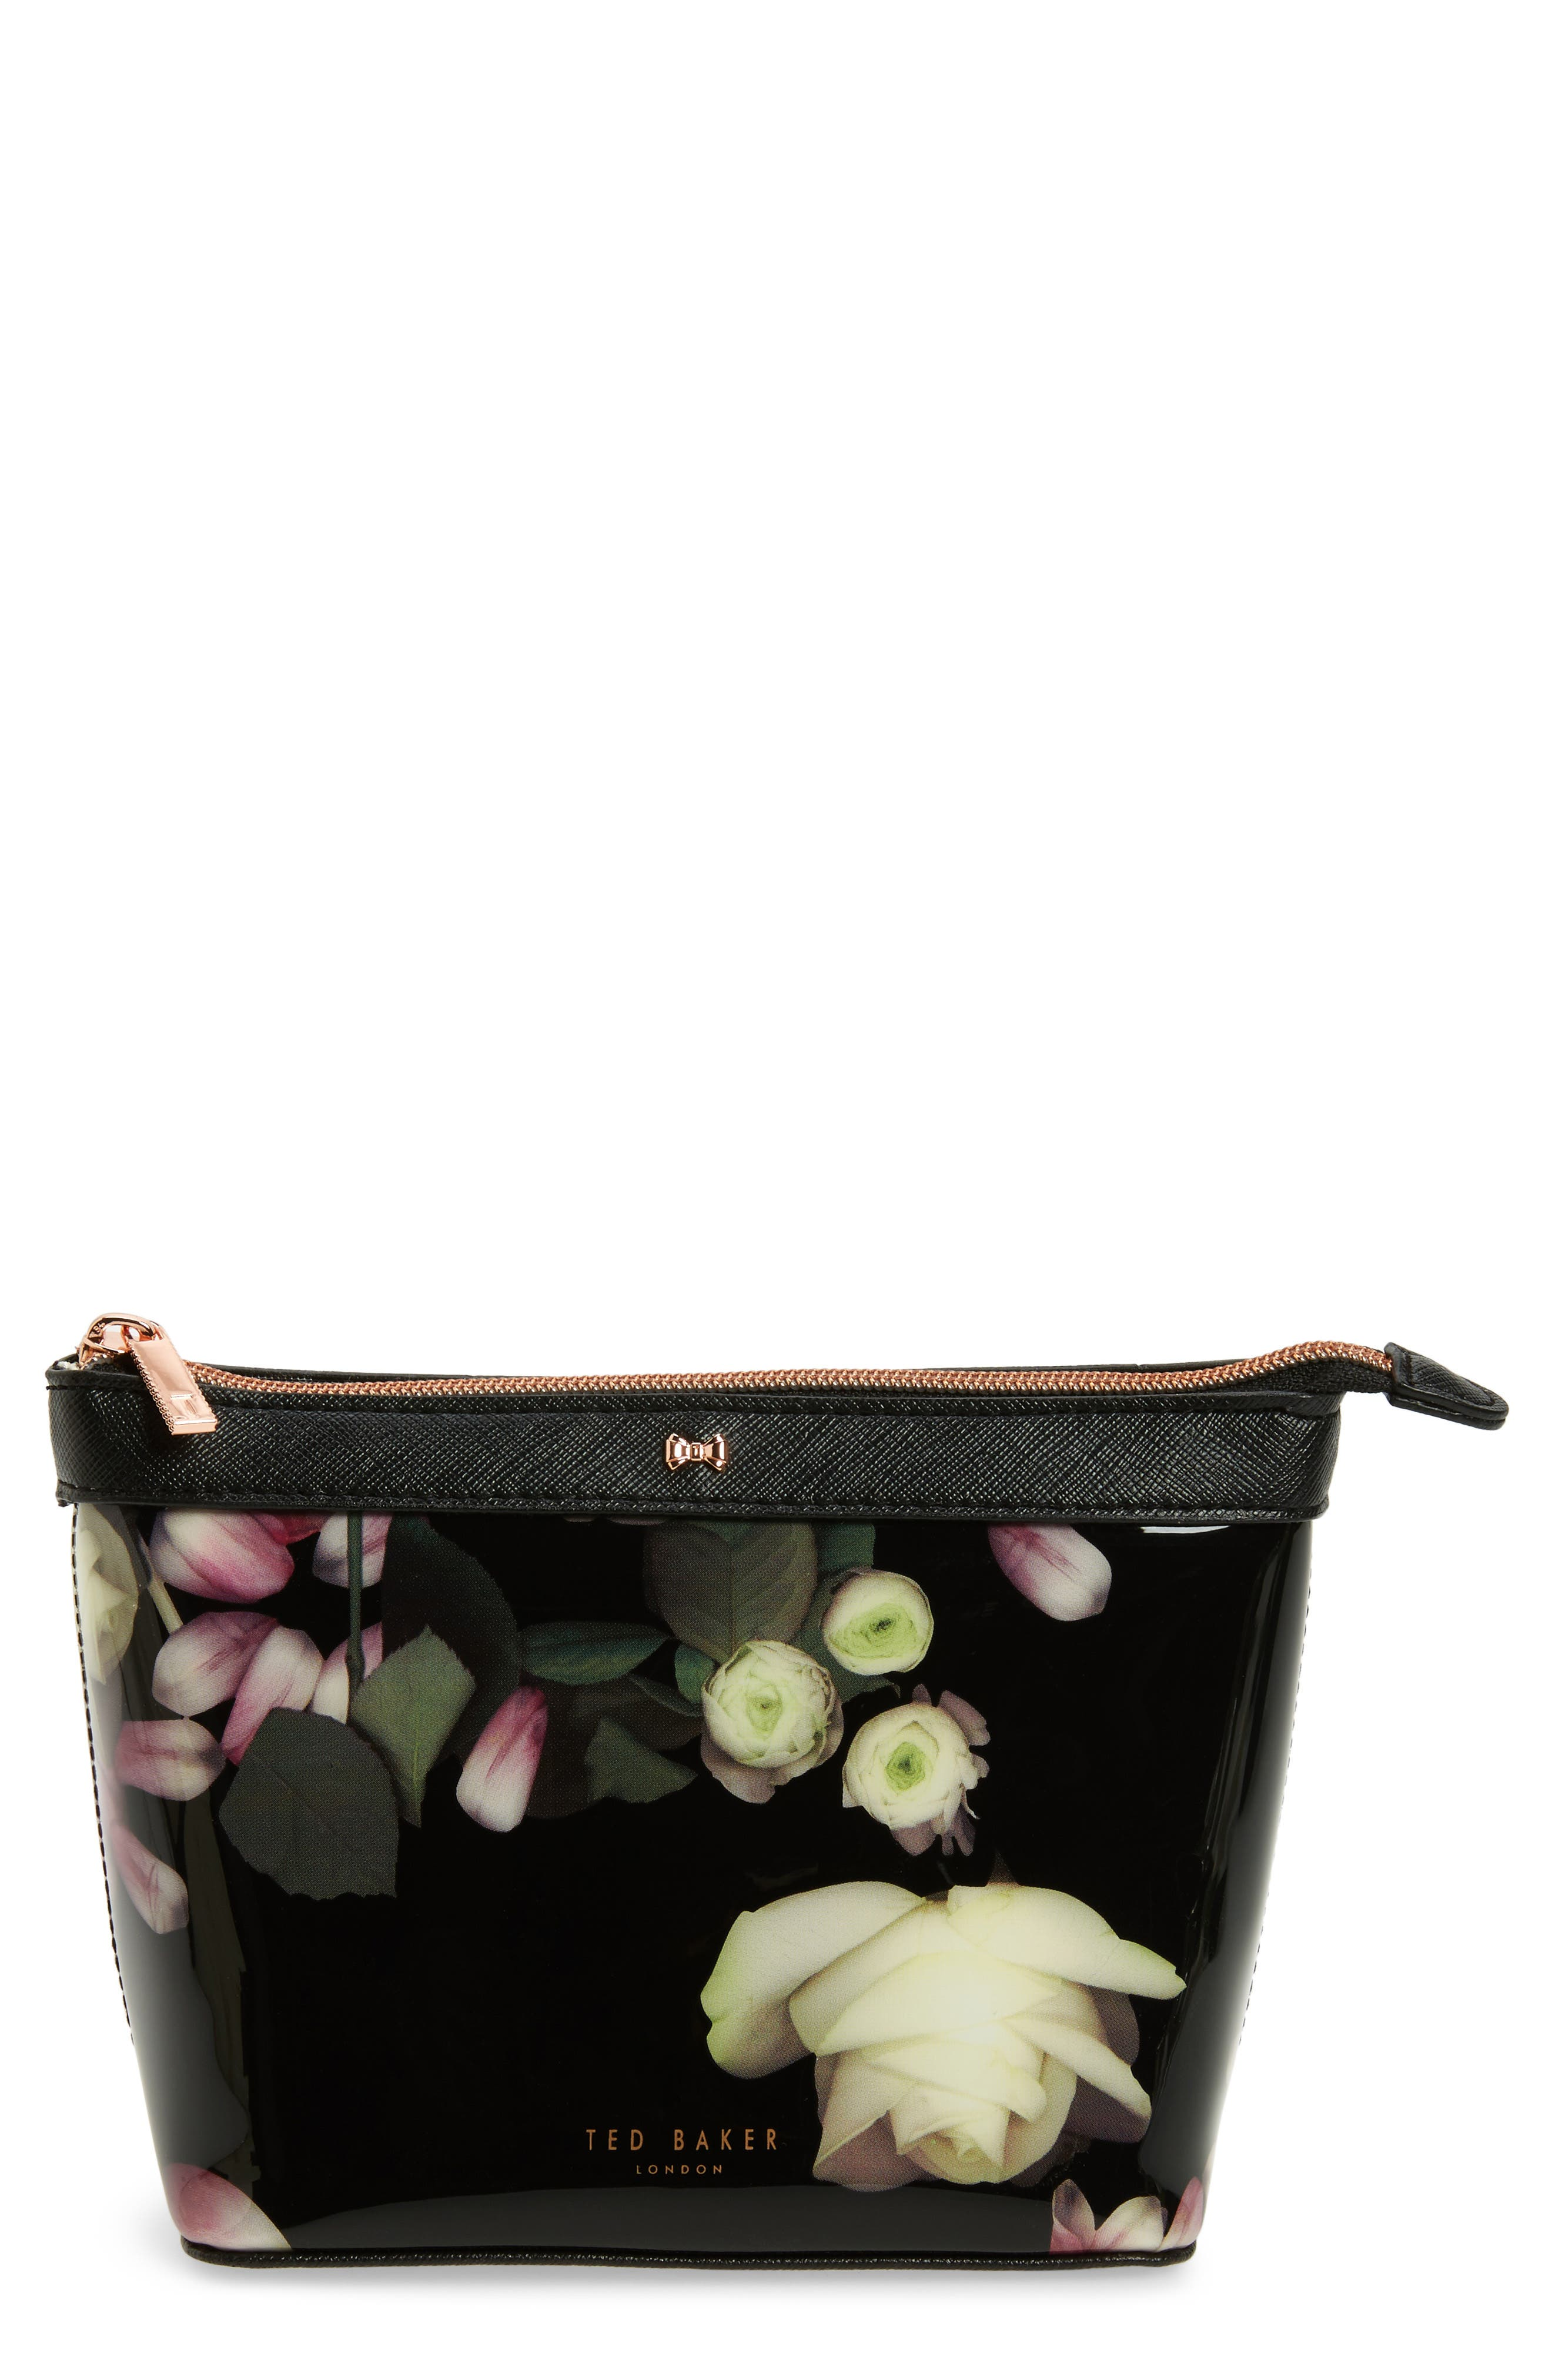 Ted Baker London Zaire Kensington Floral Print Cosmetic Pouch